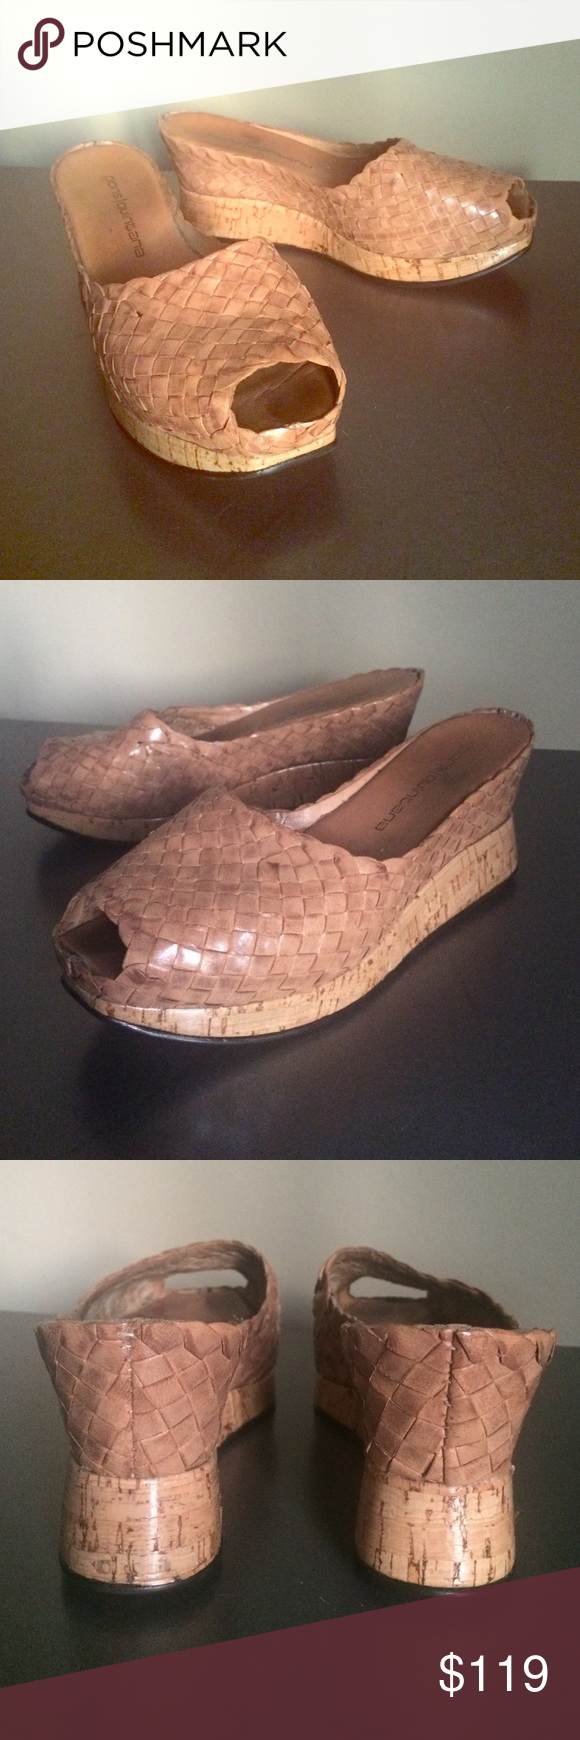 Rare! pons quitana Handmade Wedge Sandals - 37/7.5 RARE! & Like New |  pons quitana Spanish handmade wedge sandals in an excellent condition size 37/7 - 7.5 Pons Quitana Shoes Sandals